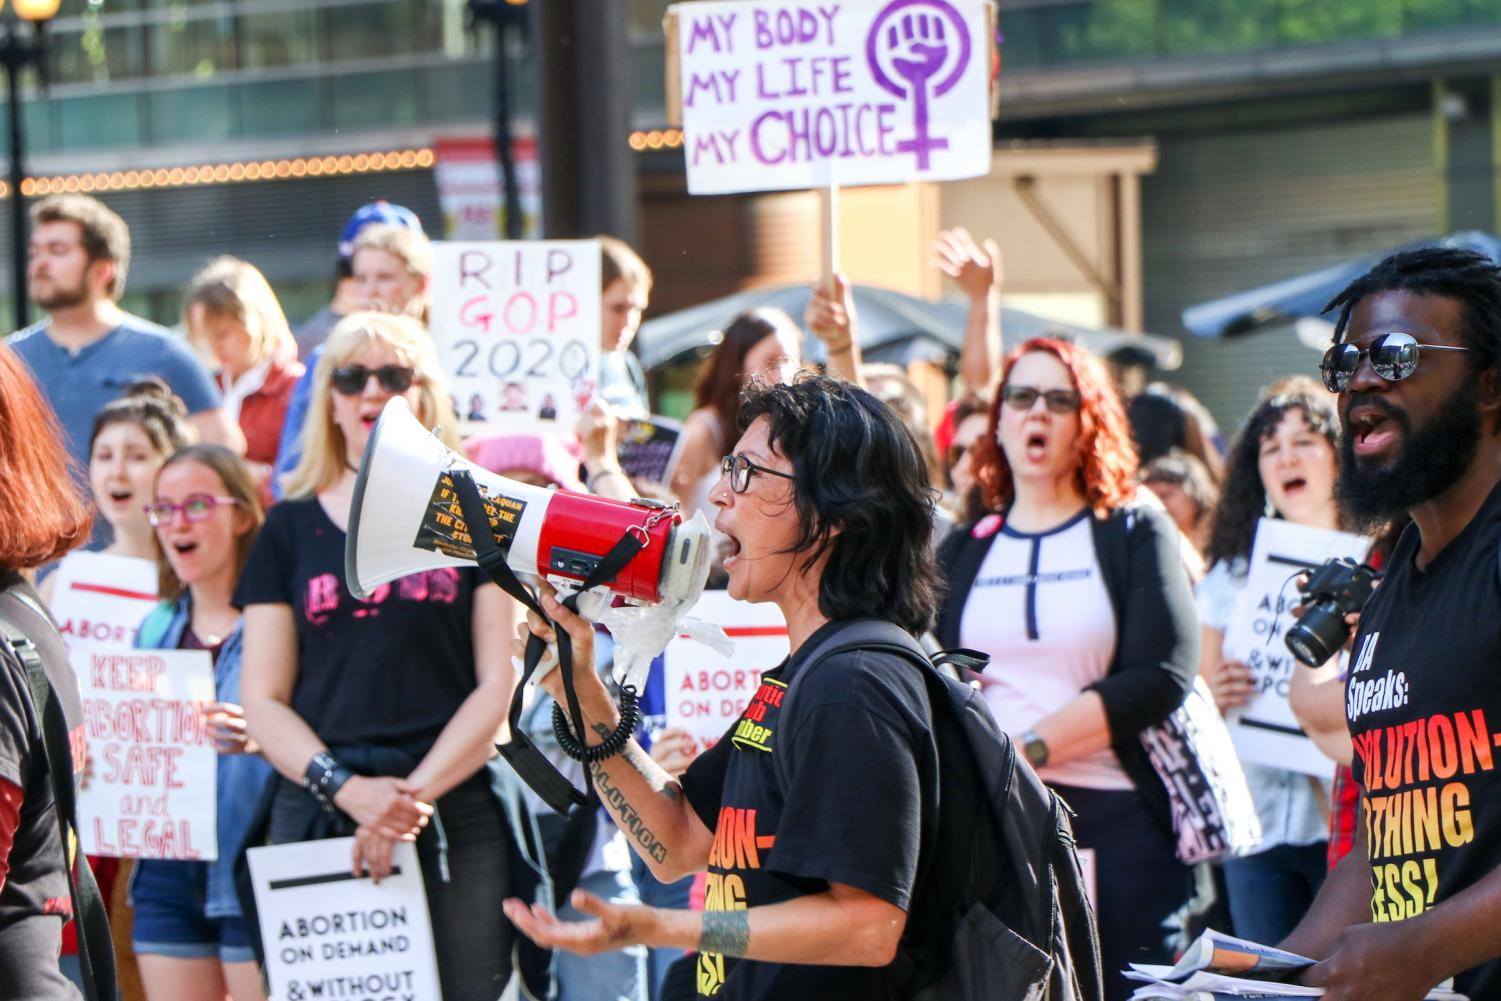 Maya Cruz, a supporter of communist group Revolution Club,  spiritedly addresses the crowd at the pro-choice Chicago Rally for Reproductive Justice on Thursday.